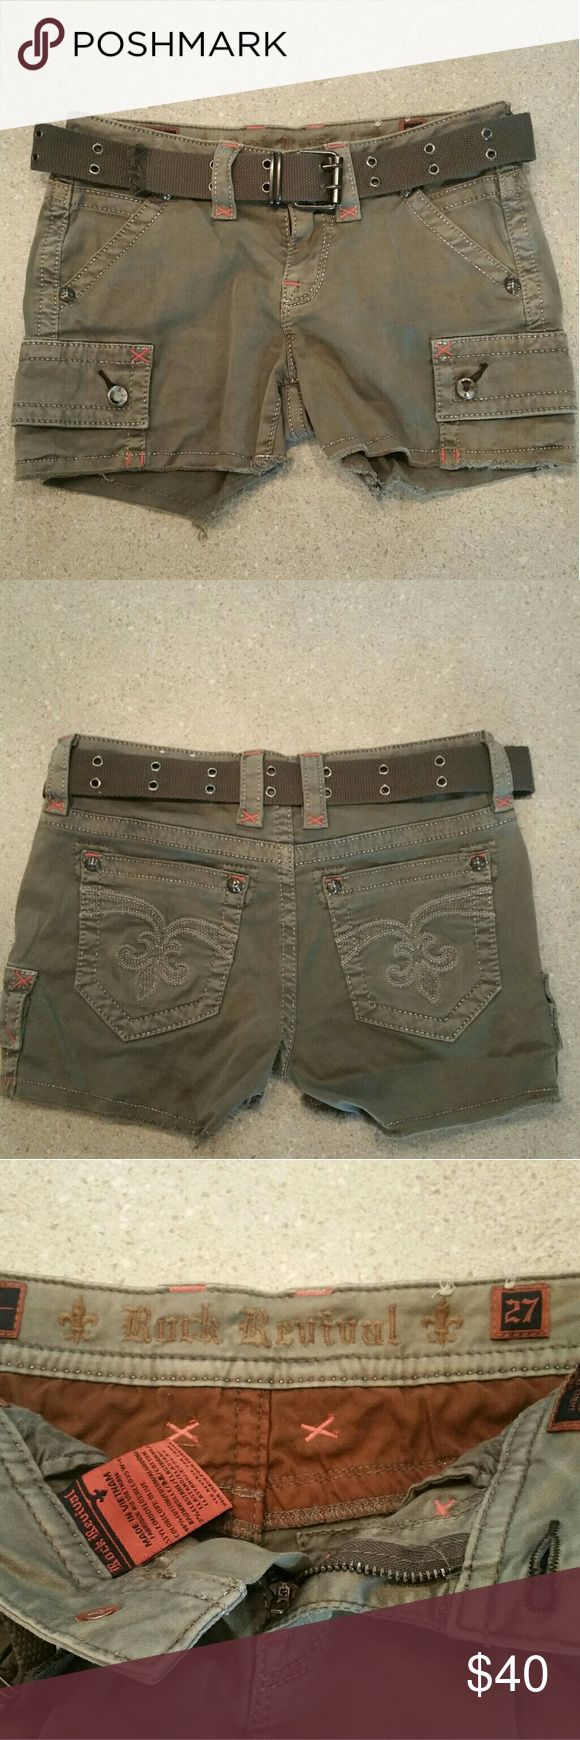 Ladies Rock Revival size 27 shorts Excellent condition Rock Revival shorts purchased from the buckle. There is no stains or holes in them. The stones are not damaged always washed inside out and dried flat! The belt is missing one metal rivet see photo above. Thanks for viewing and happy shopping! Rock Revival Shorts Cargos